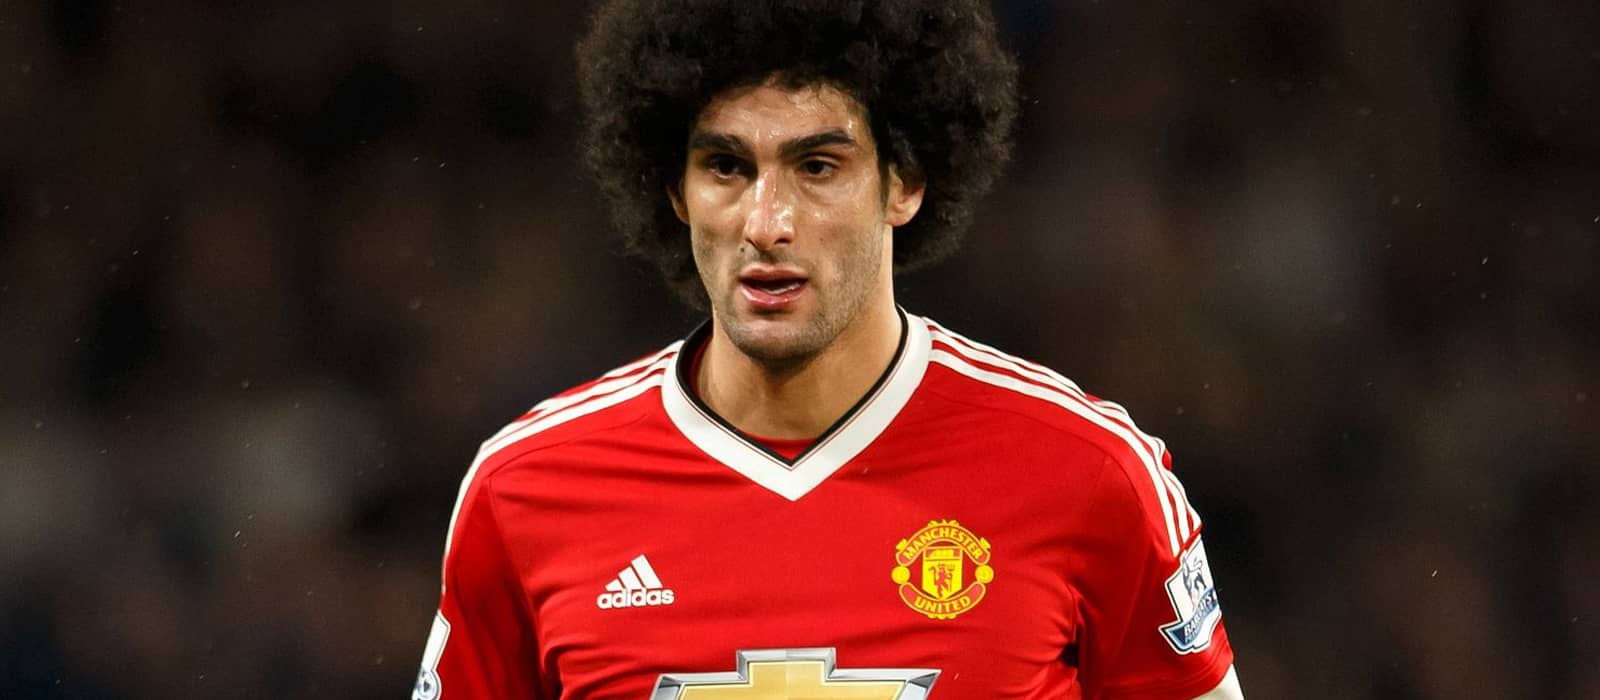 Jose Mourinho reveals how he inspired Marouane Fellaini at Manchester United